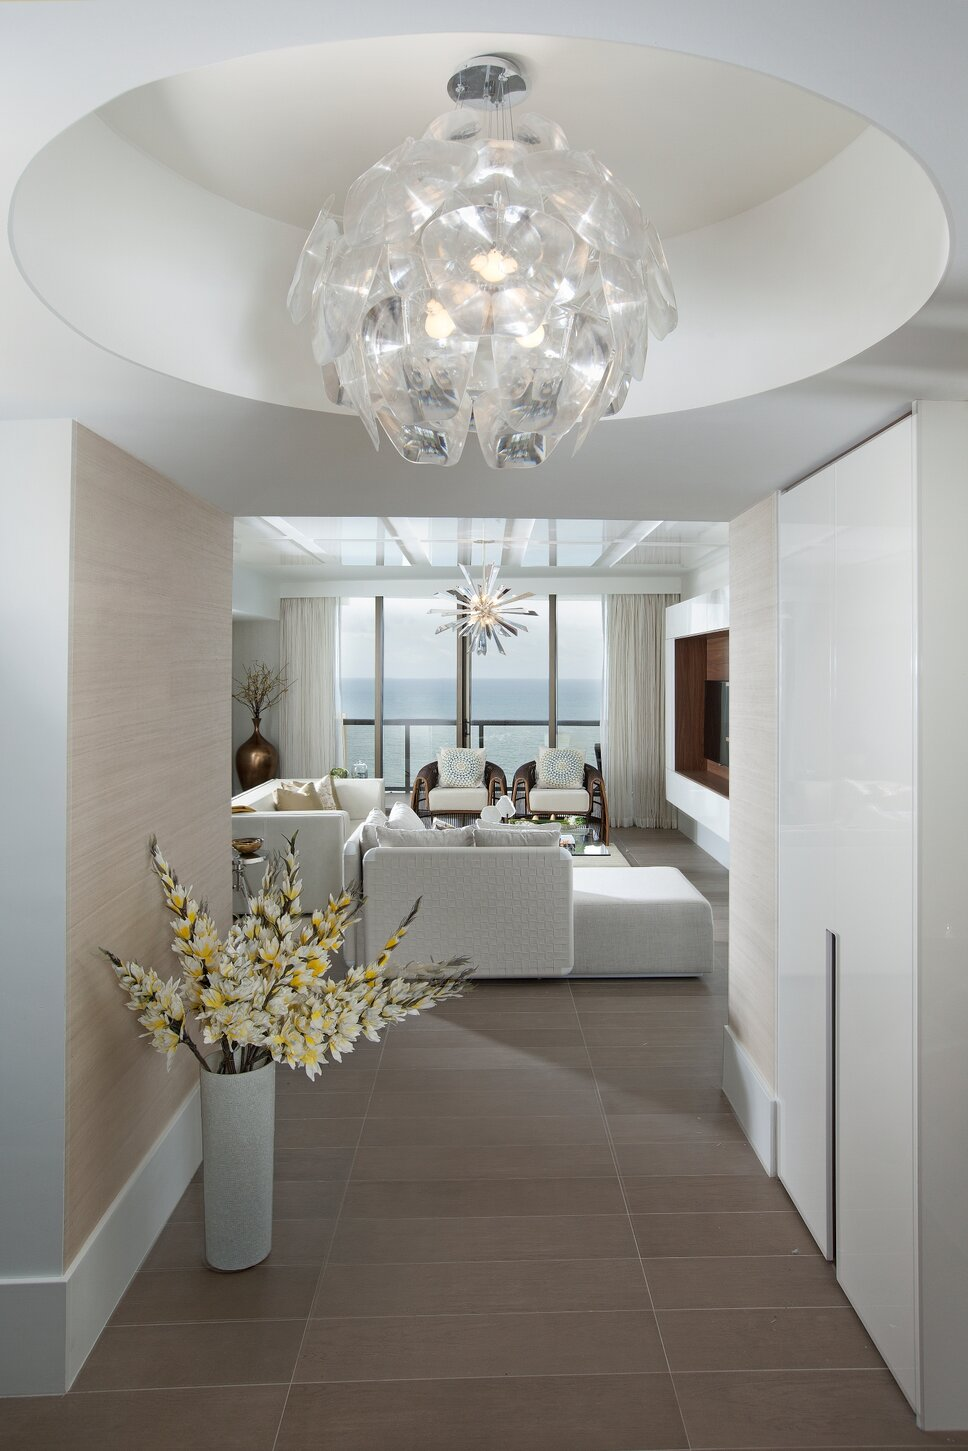 Residential interior design project in Sunny Isles, Florida. Photos by Alexia Fodere. Modern Entryway & Hallway design